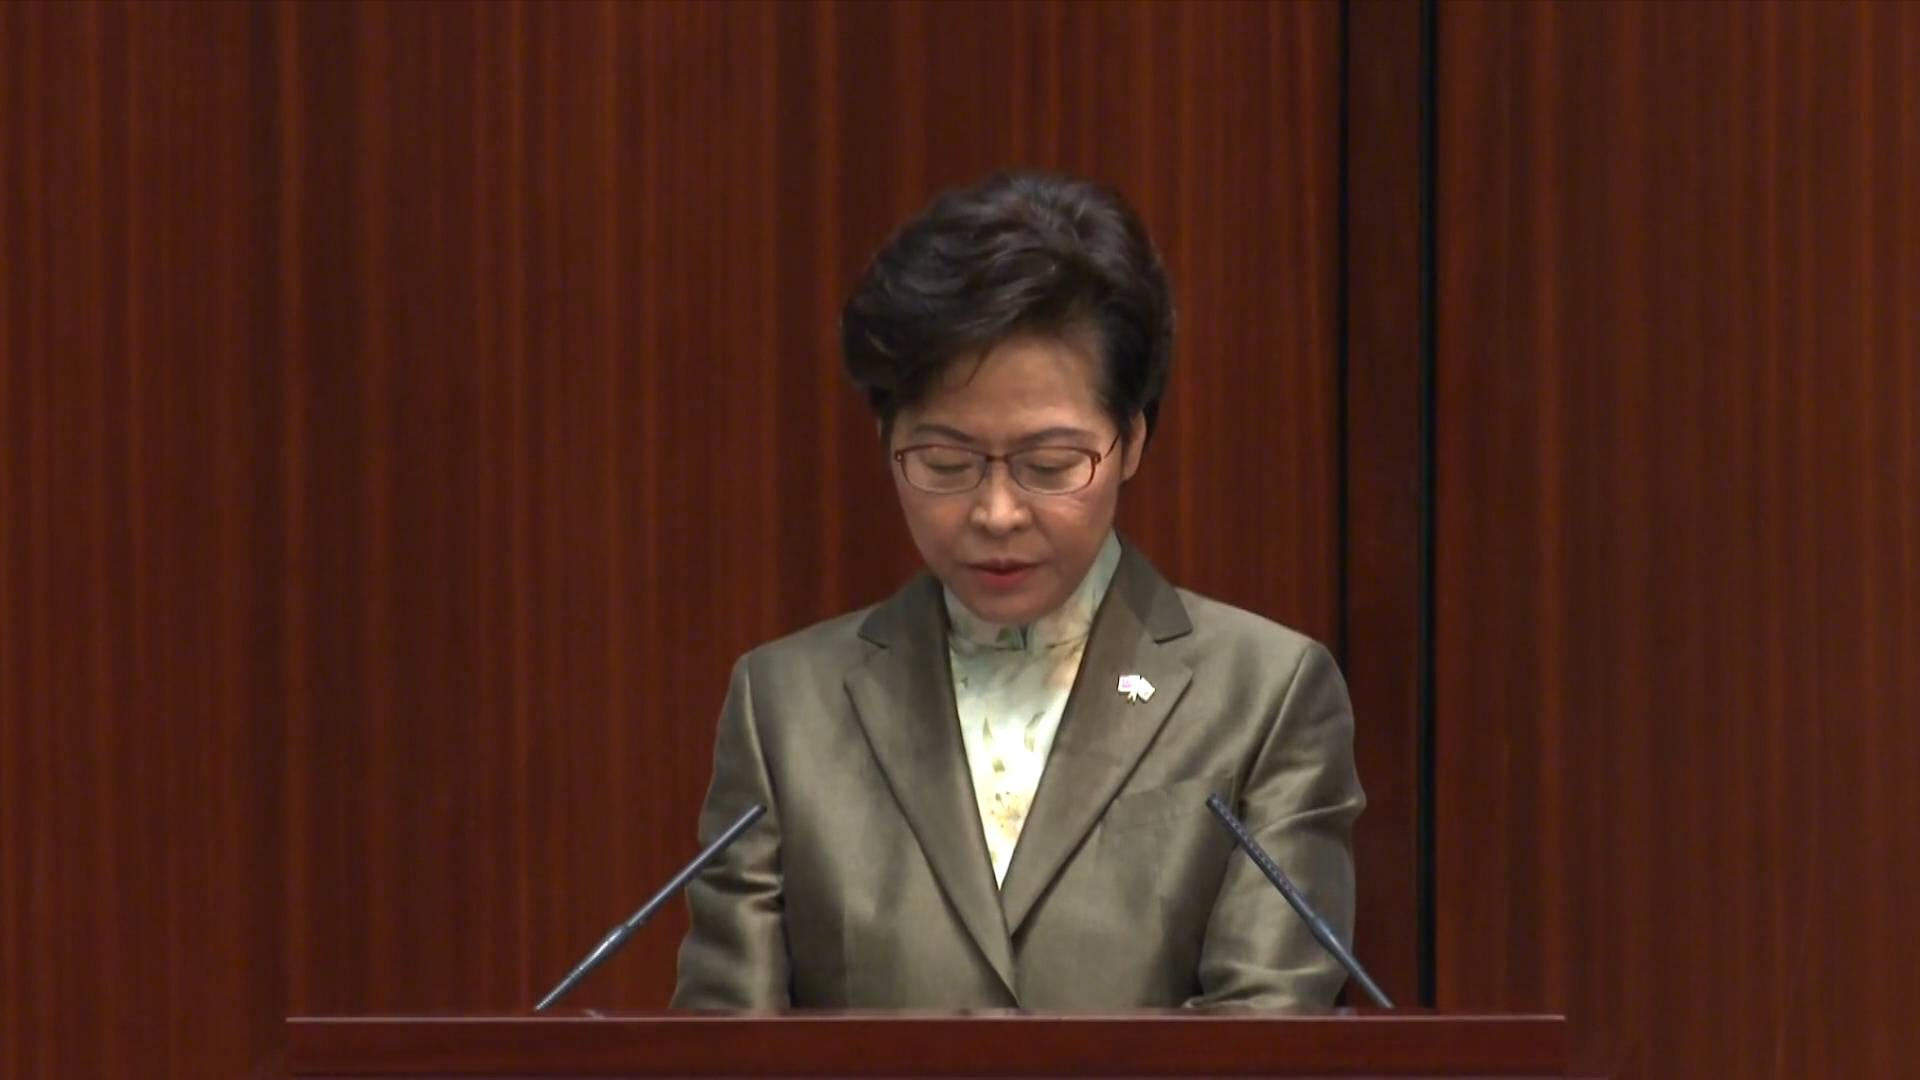 National security law effective in restoring stability in Hong Kong: HKSAR chief executive